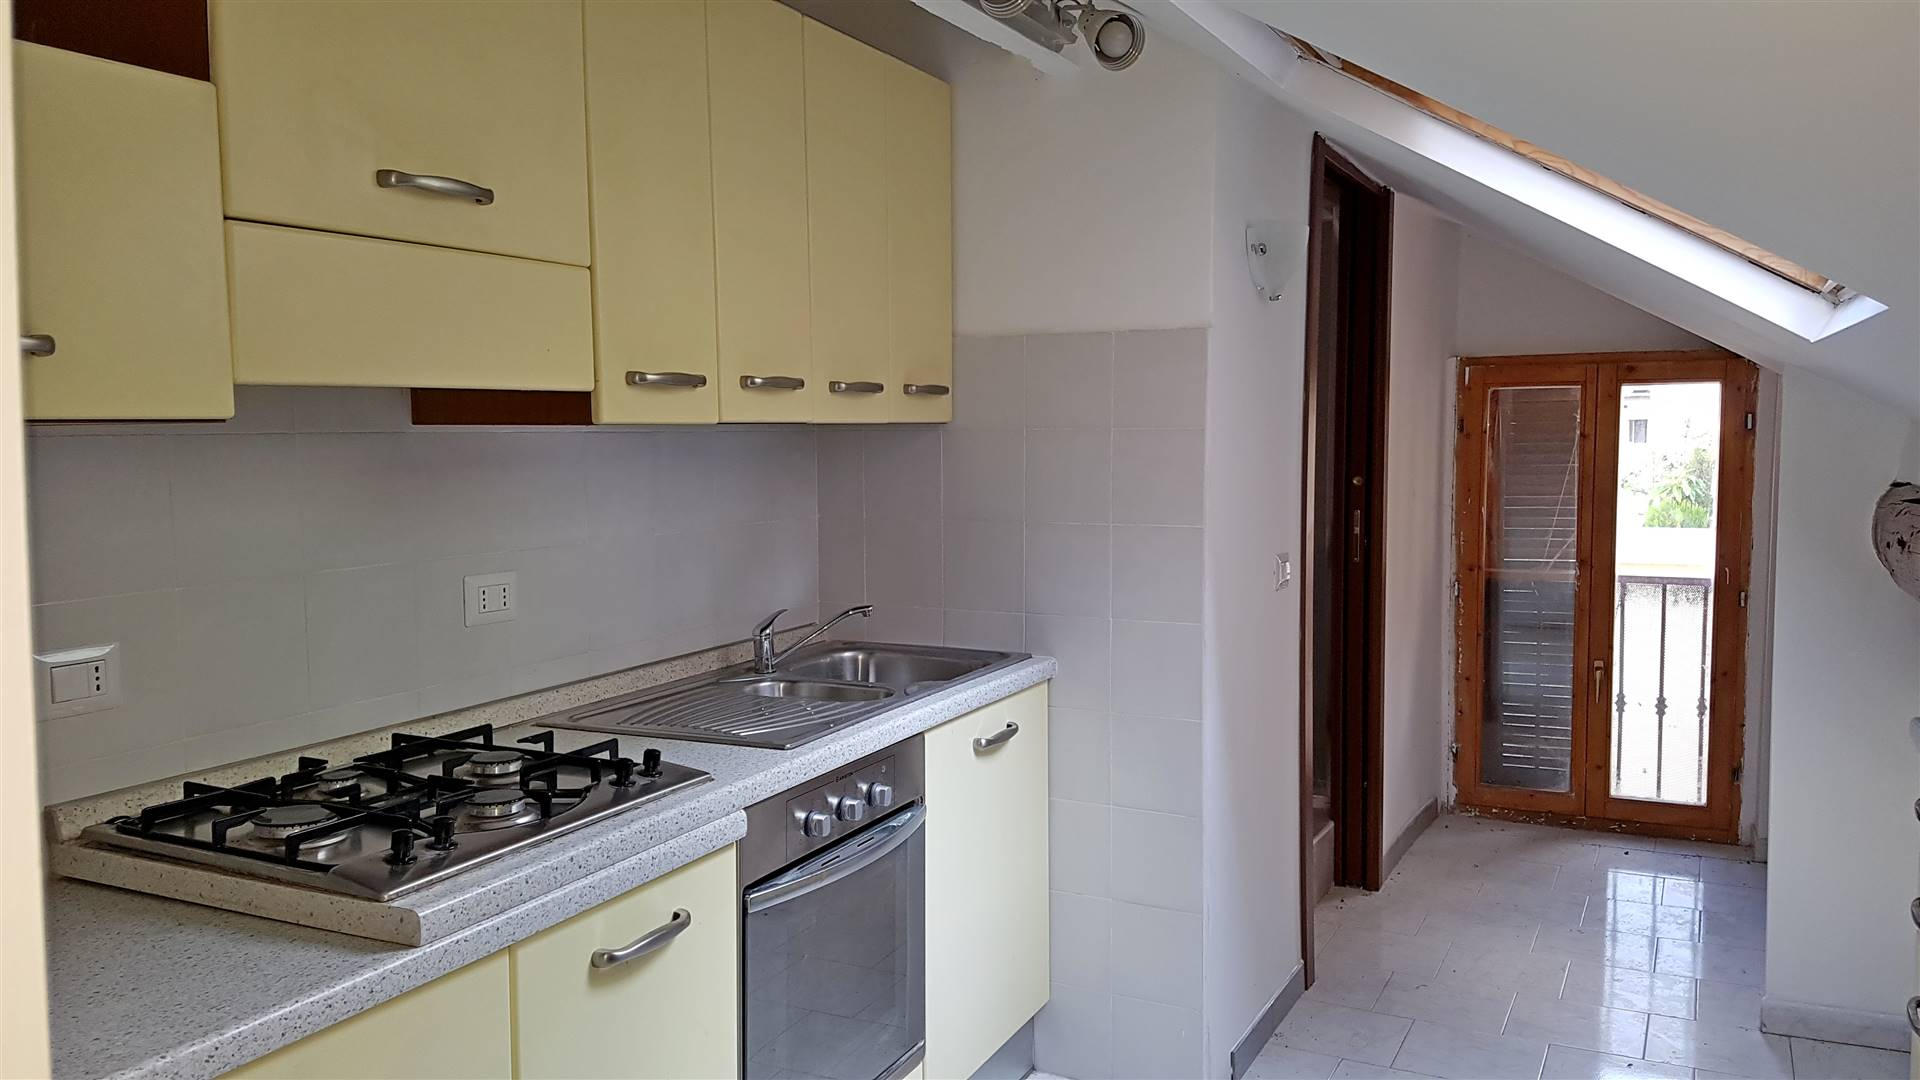 SESTO SAN GIOVANNI, Apartment for sale of 35 Sq. mt., Habitable, Heating Individual heating system, Energetic class: G, Epi: 175,87 kwh/m2 year,